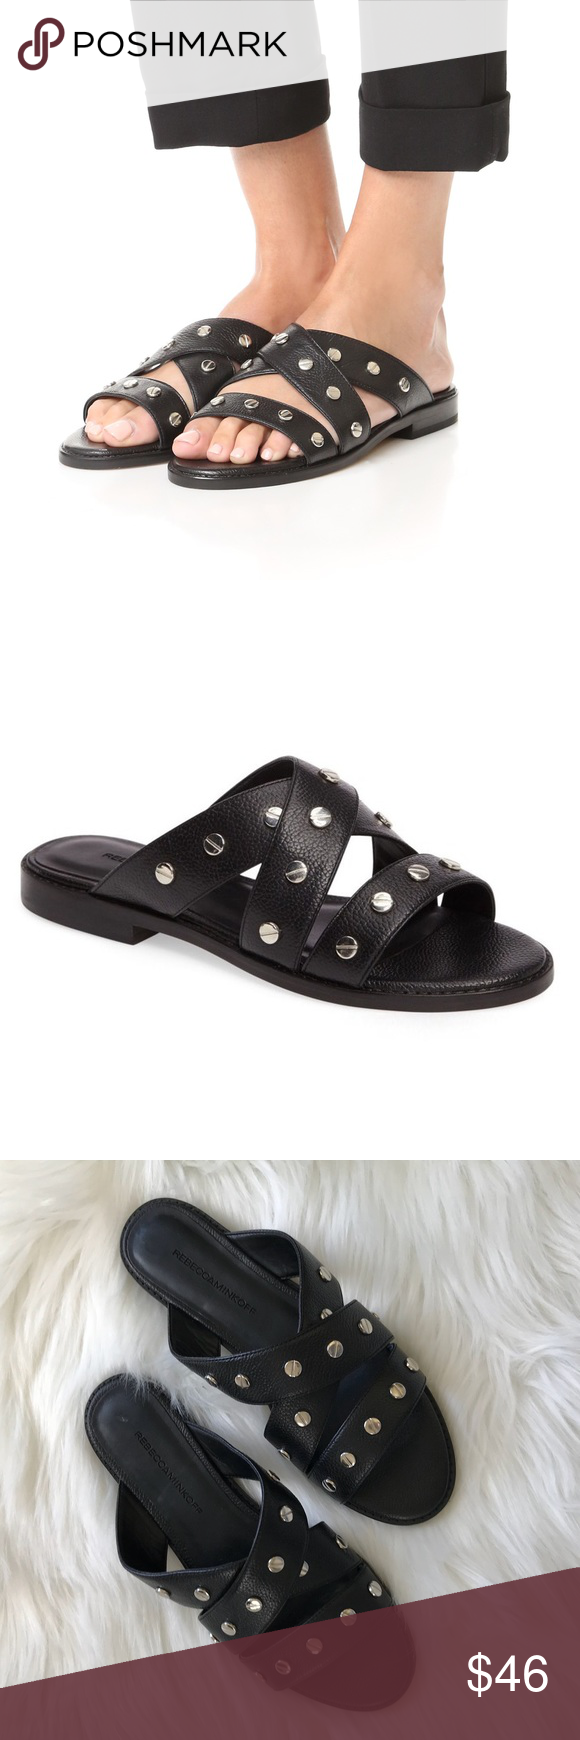 Rebecca Minkoff Studded Slide Sandals w/ Tags looking for online tumblr cheap price buy cheap affordable amazing price for sale sale online shop eusJPszw